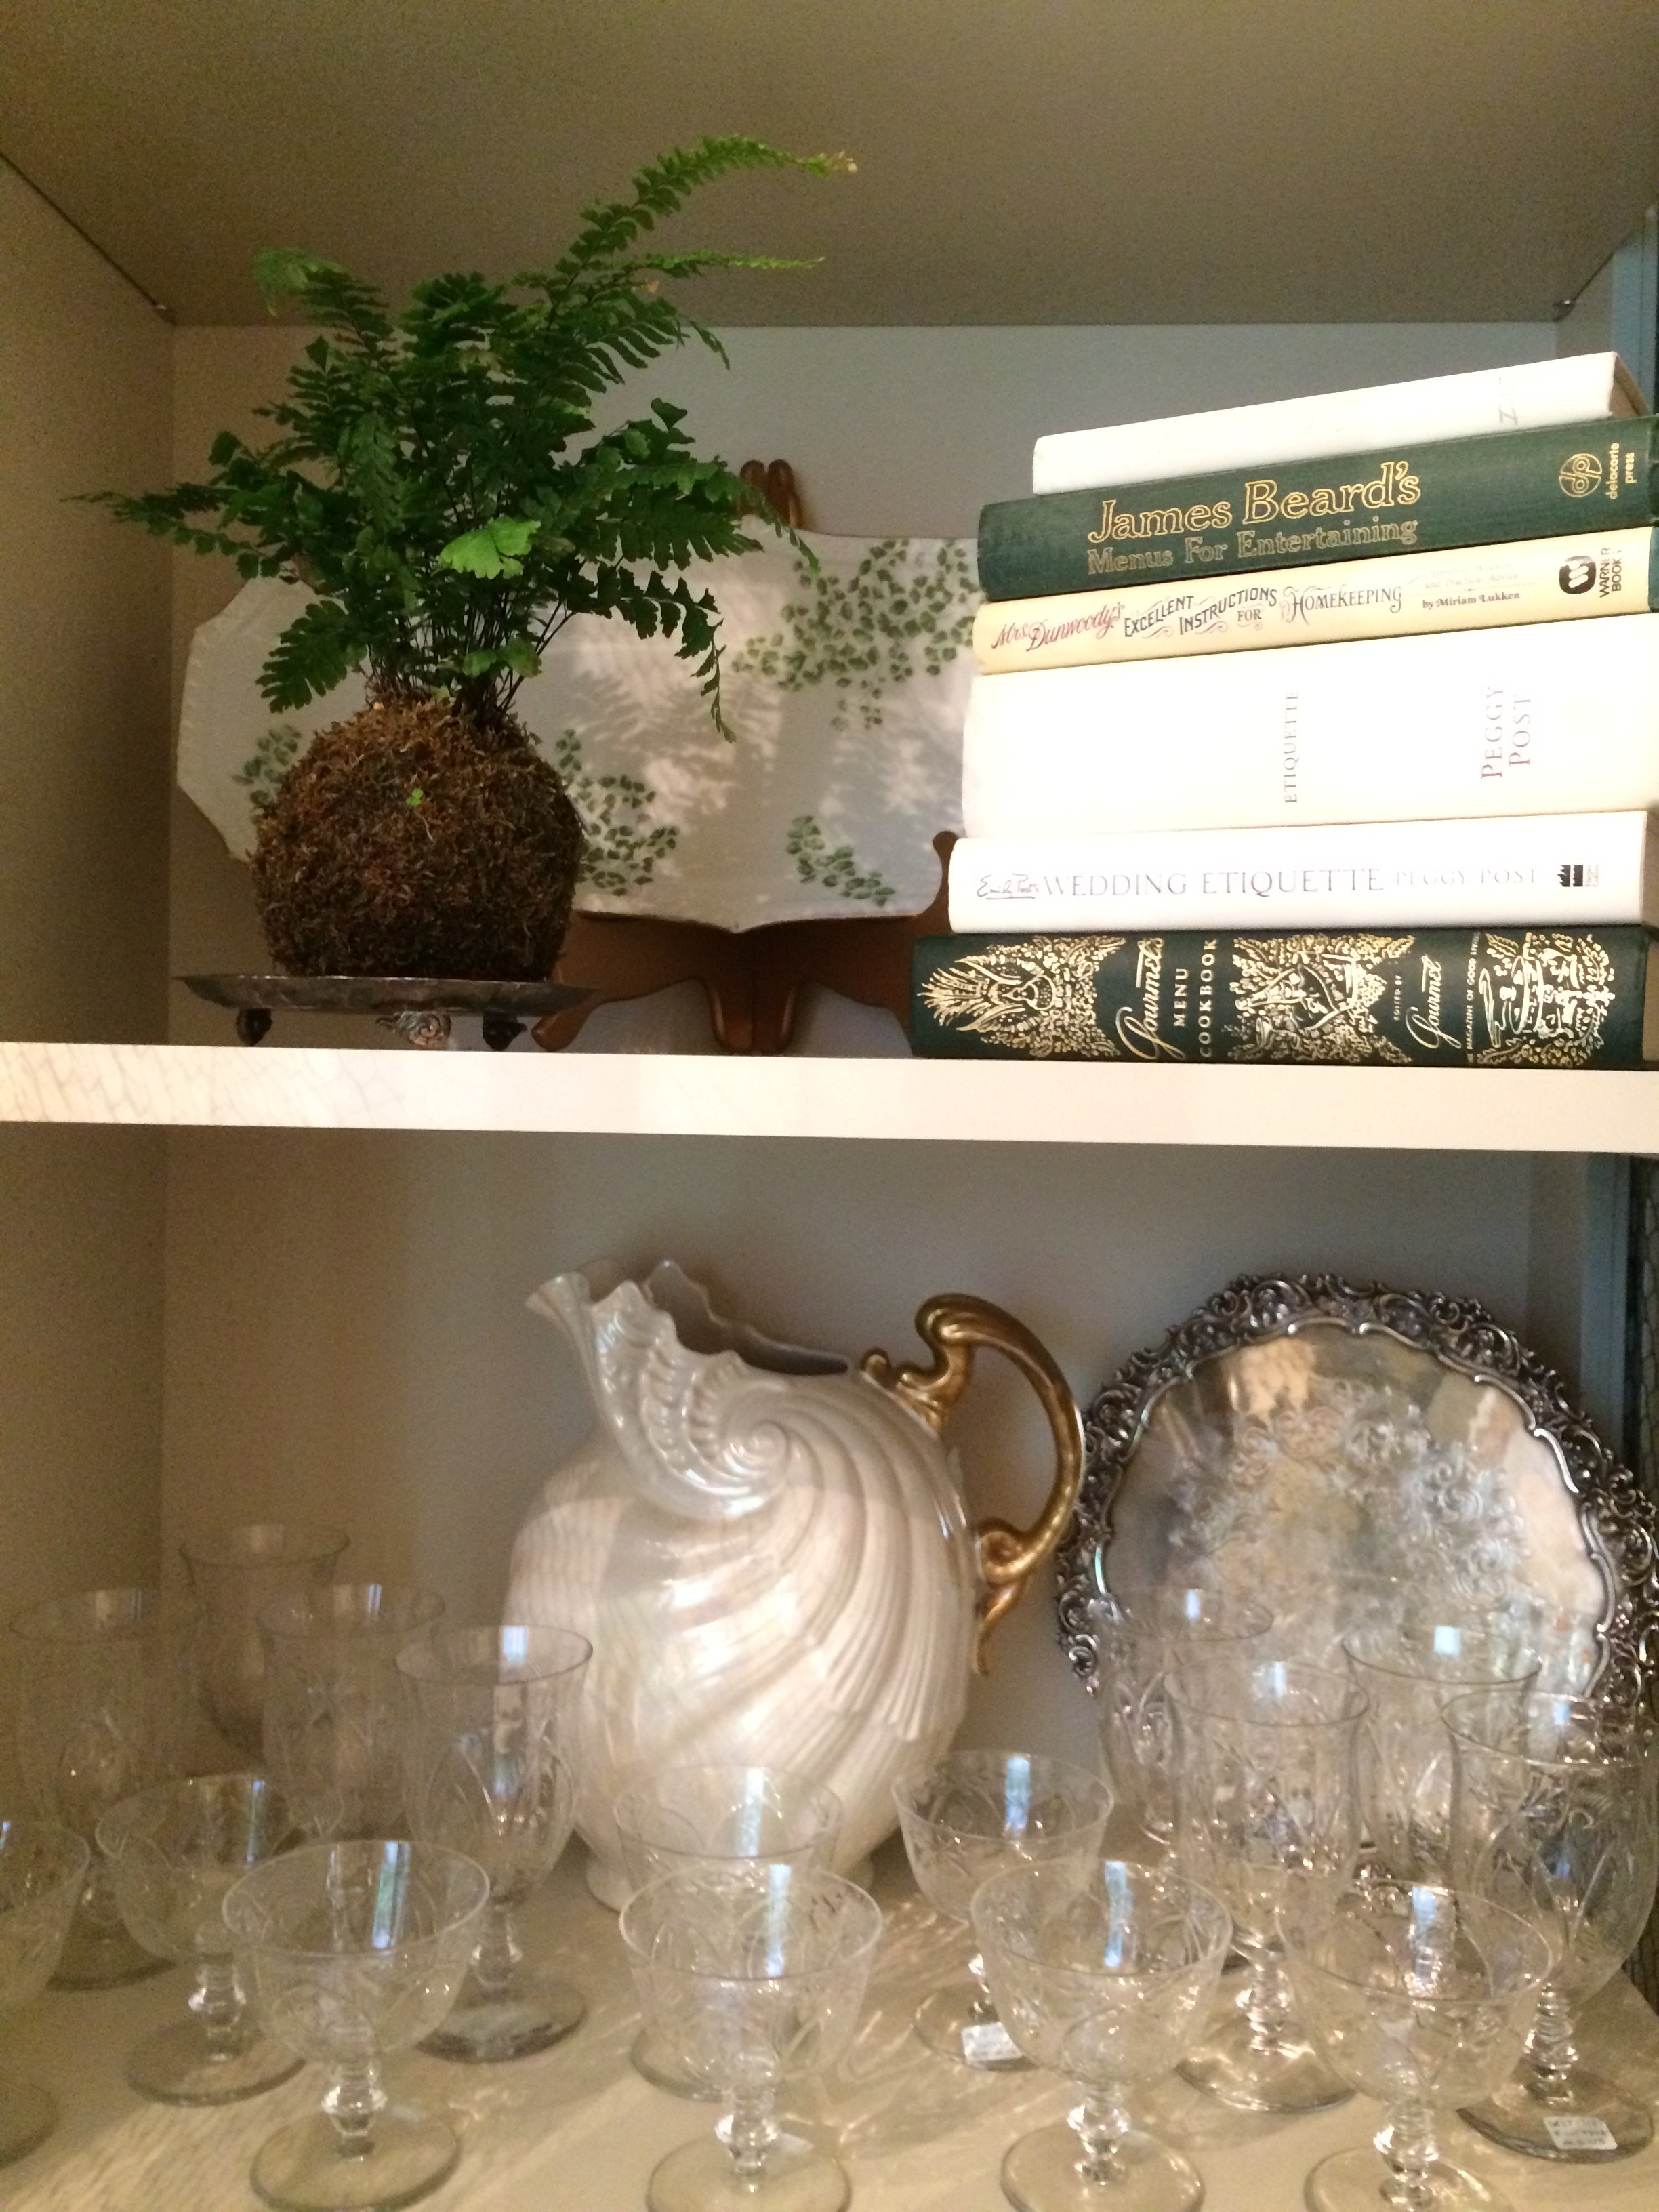 Stem wares, pitchers, trays, a Limoge platter and books